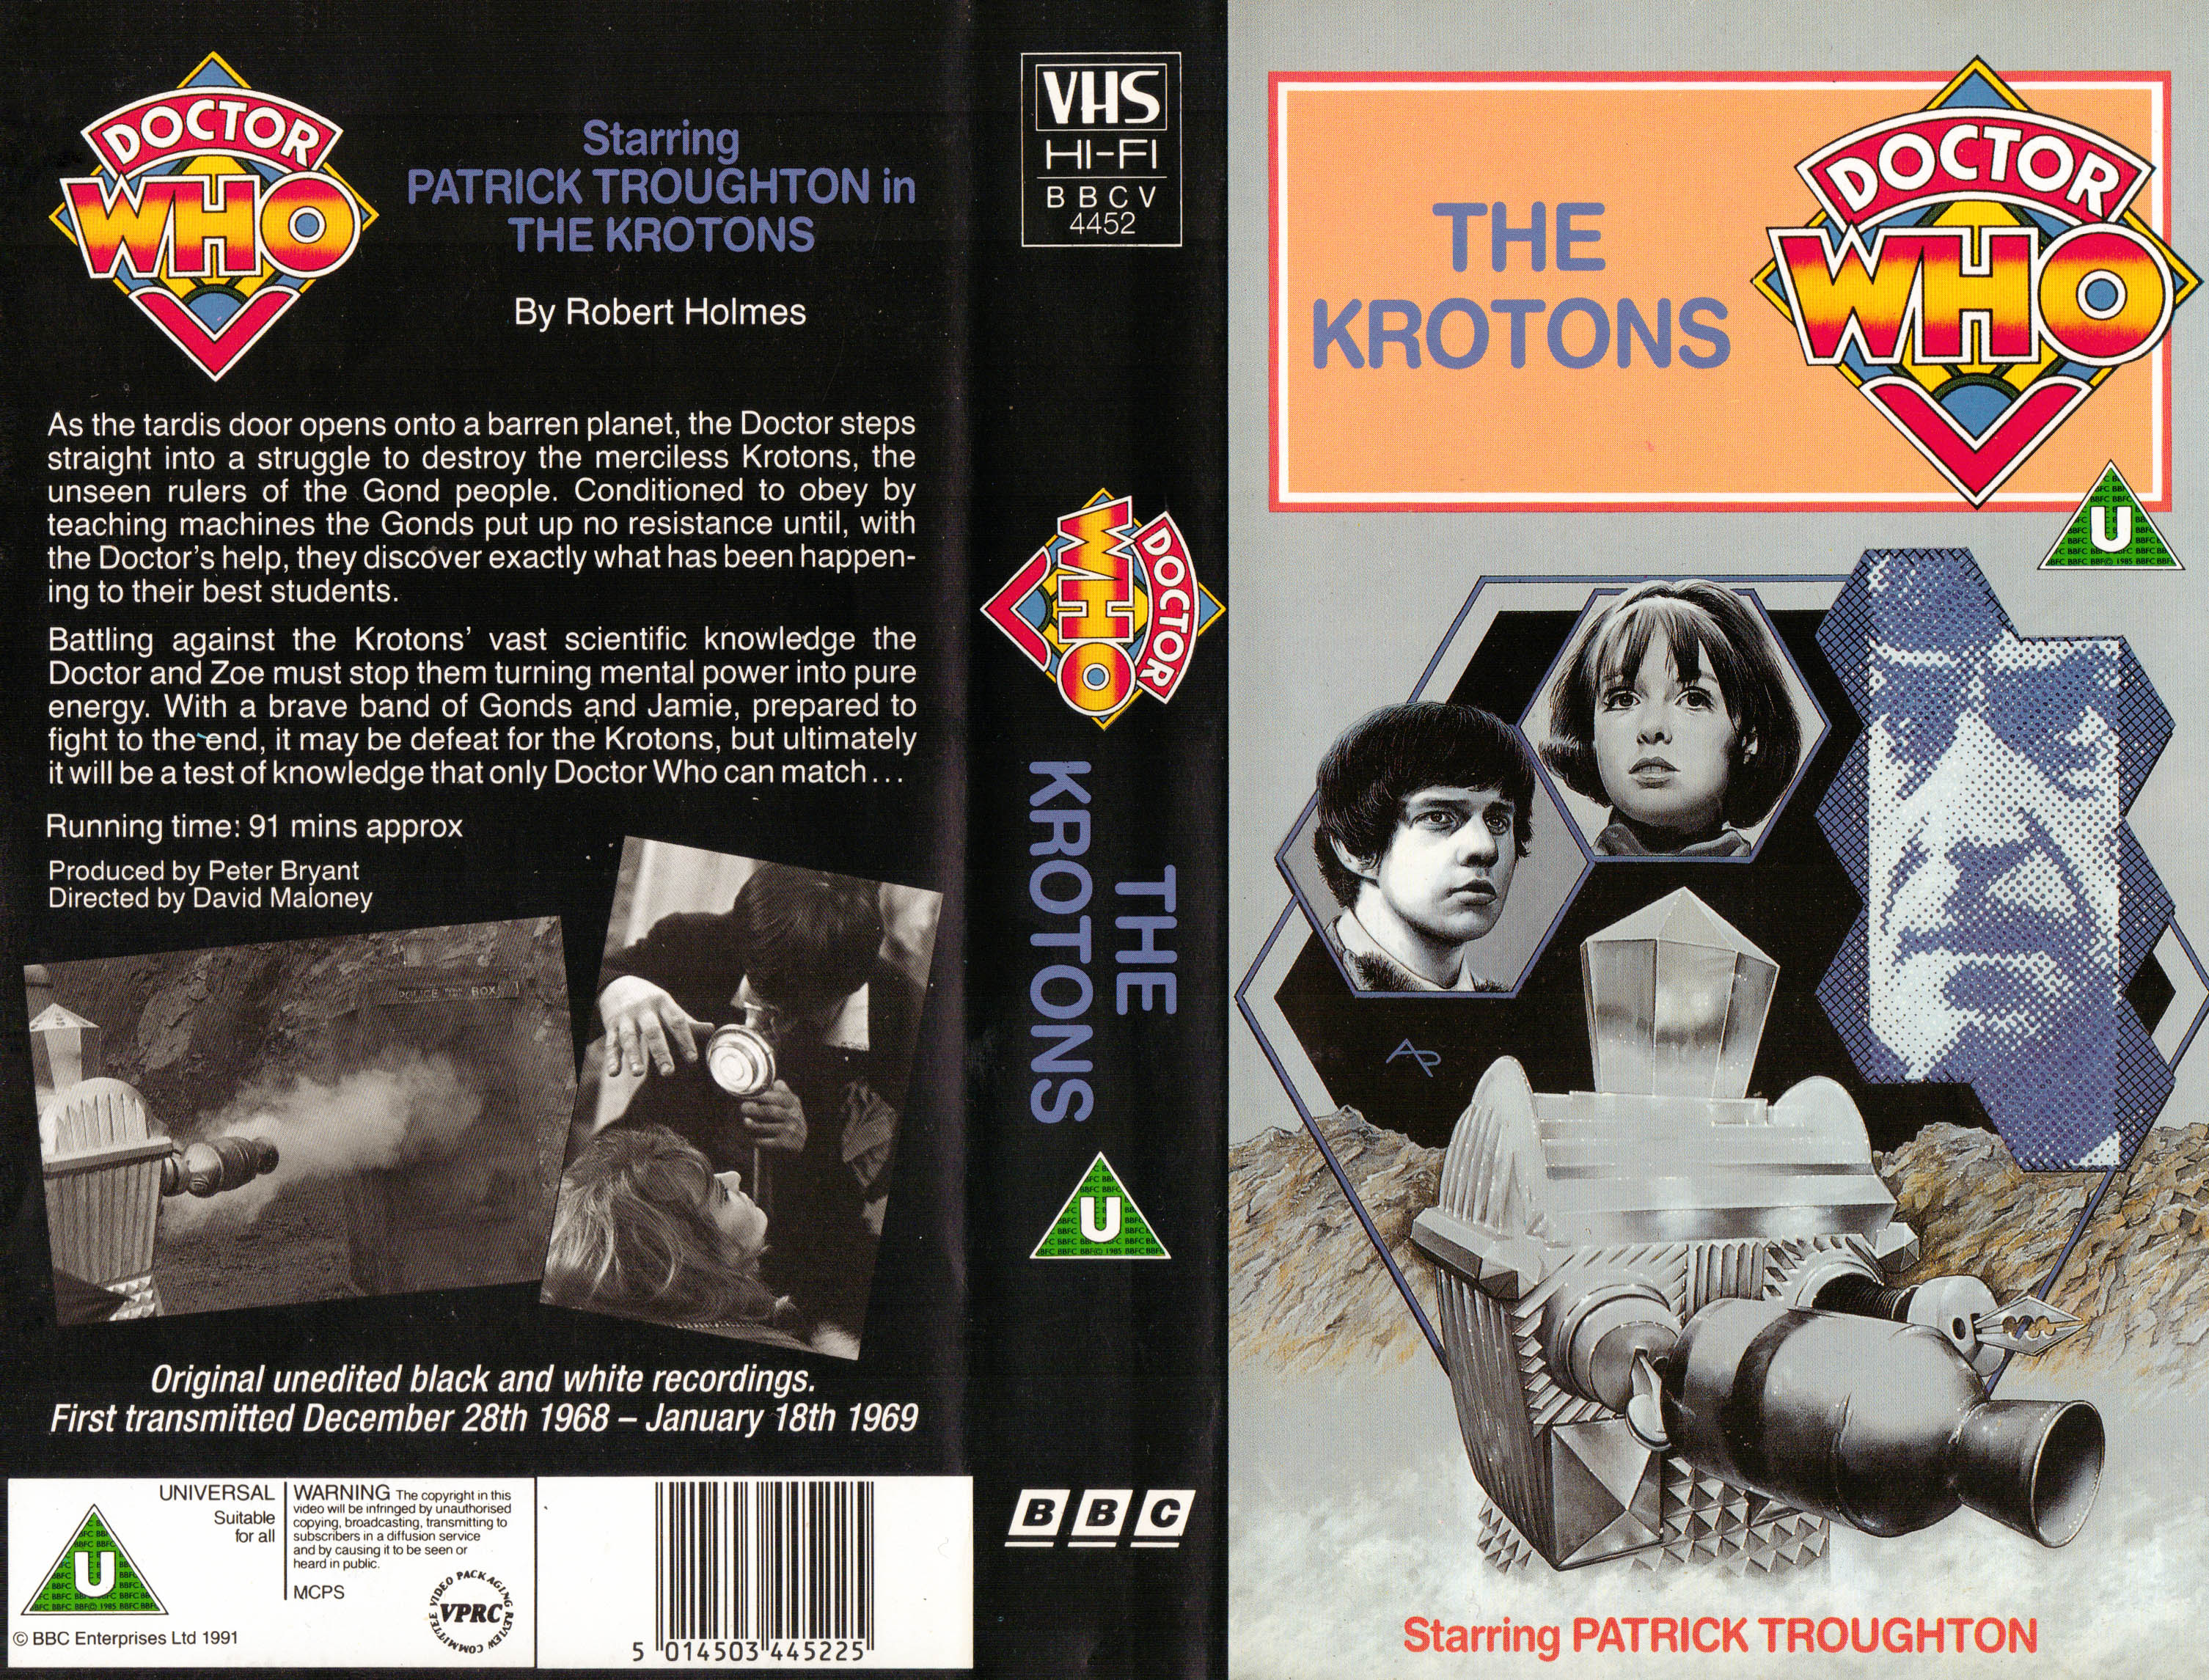 The Krotons